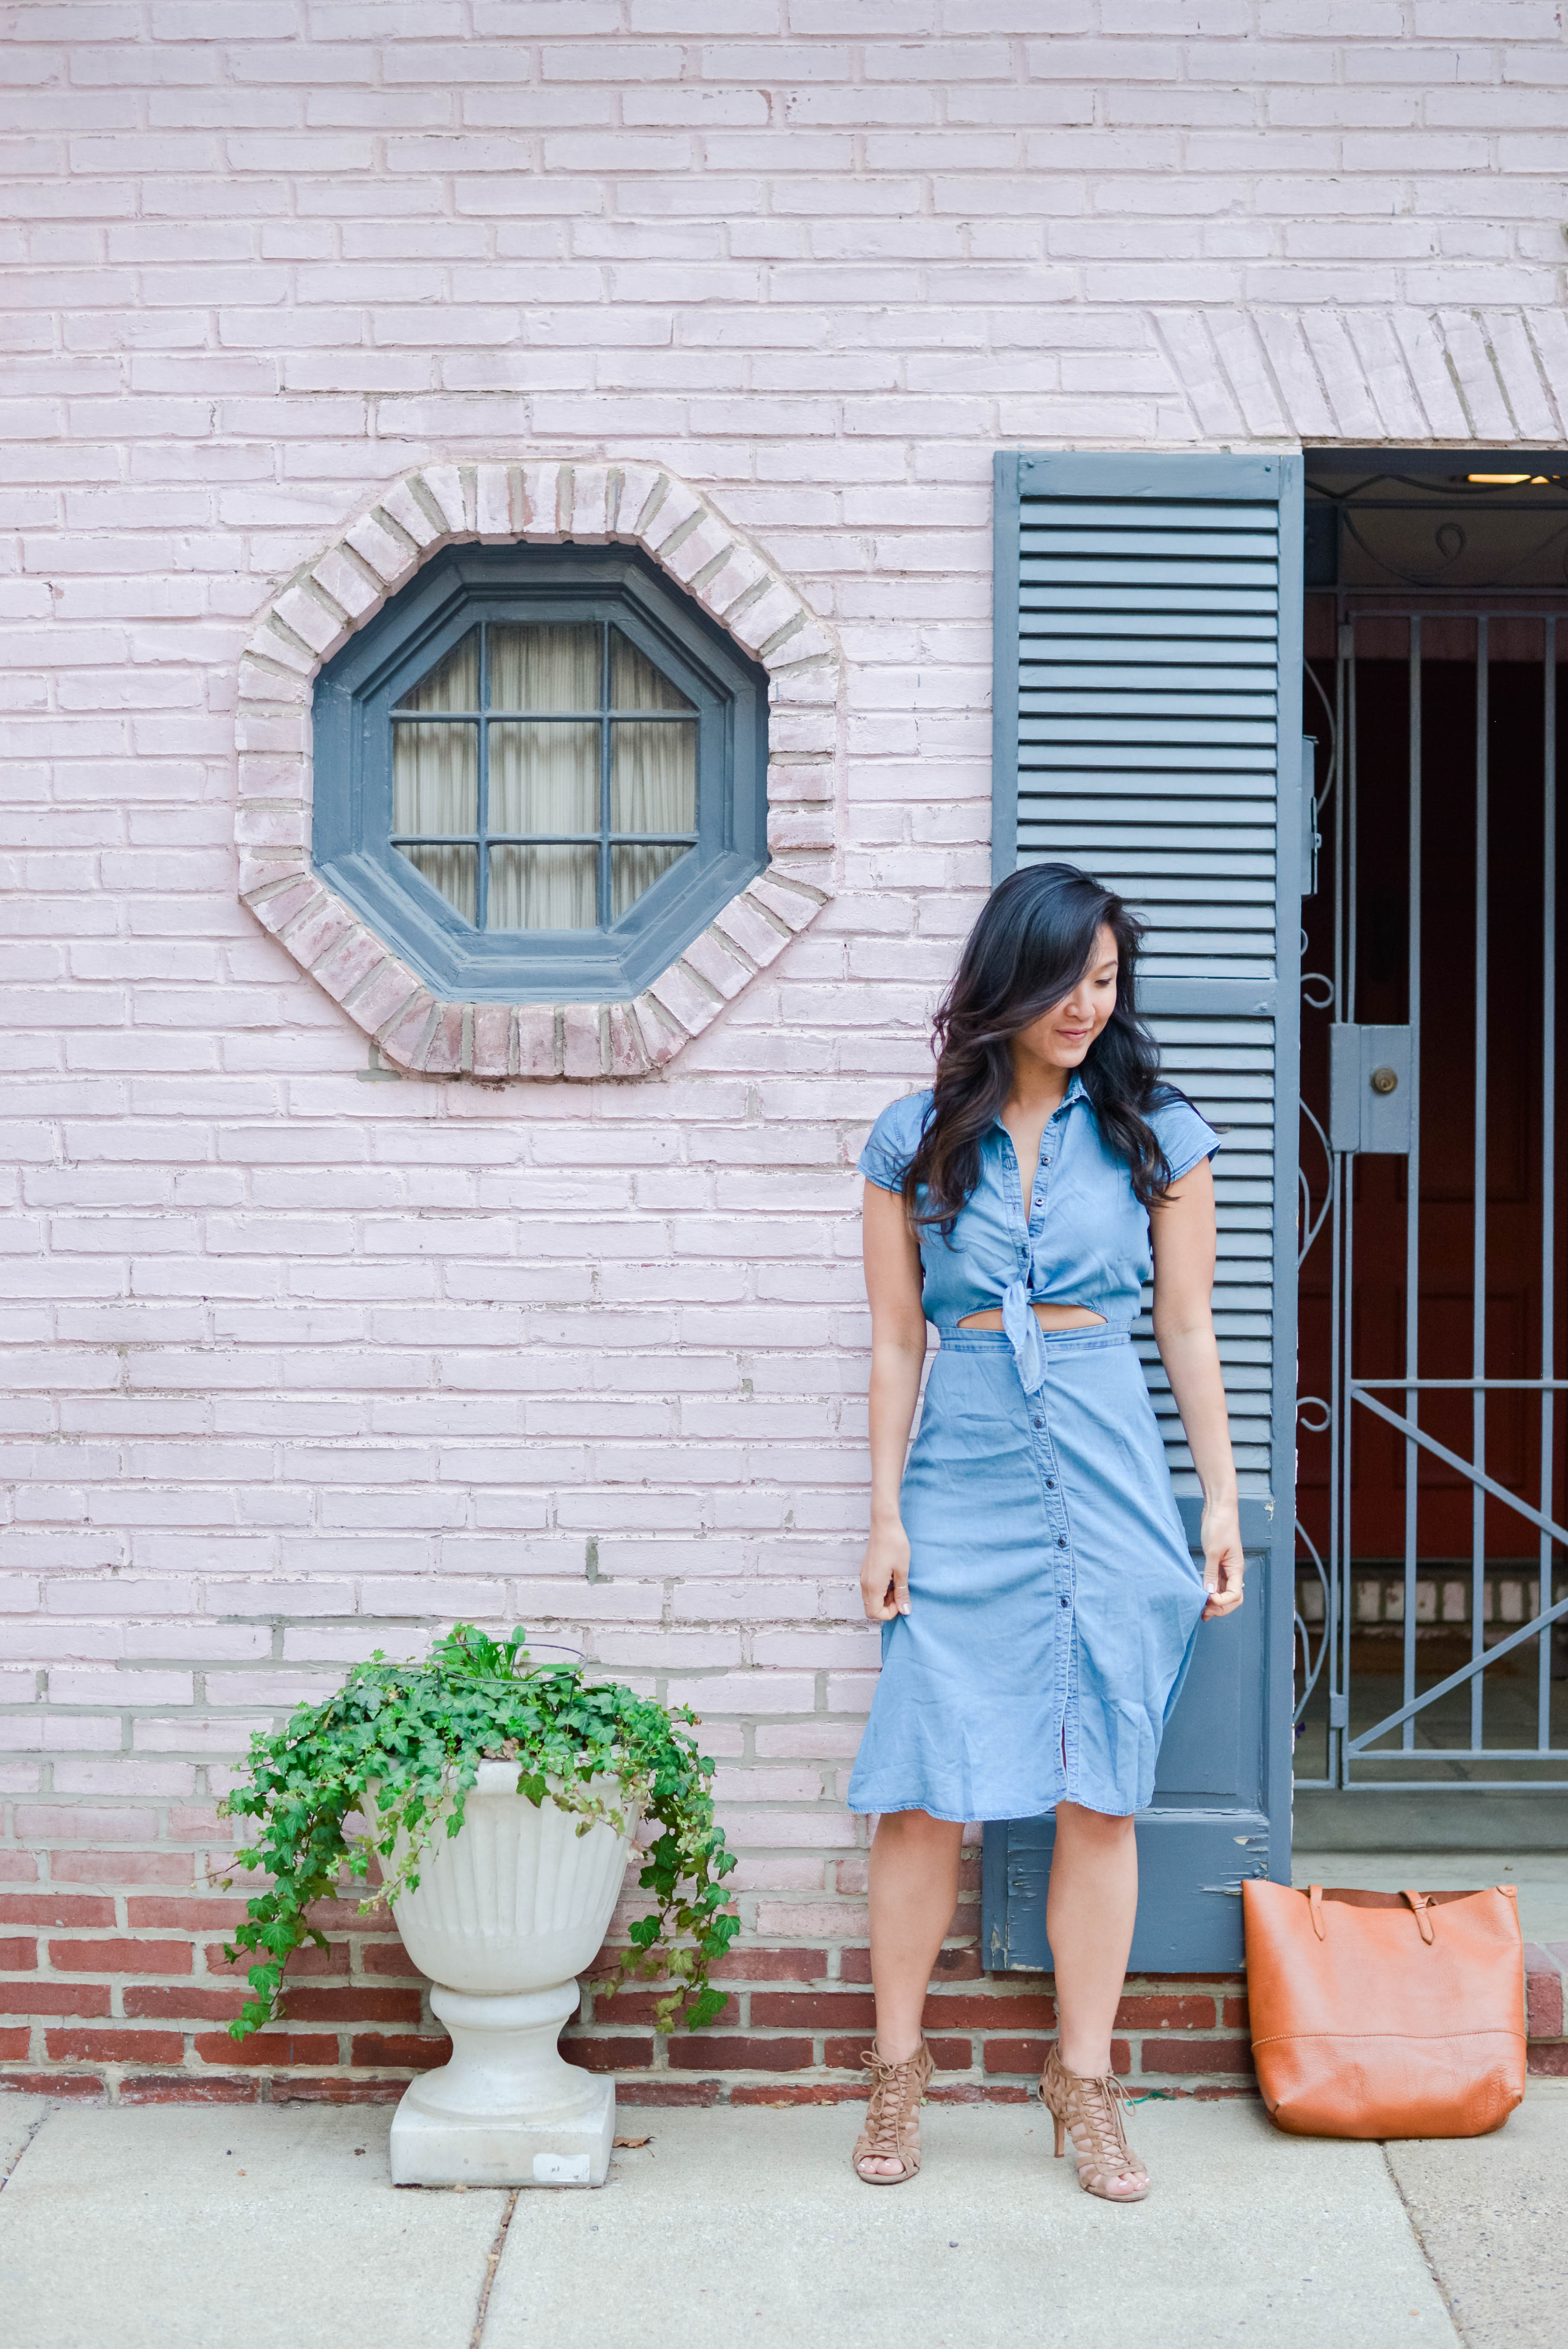 Philadelphia_Blogger_Fashion_Blog_Portrait_Photographer_Andrea_Krout_Photography_Style-4